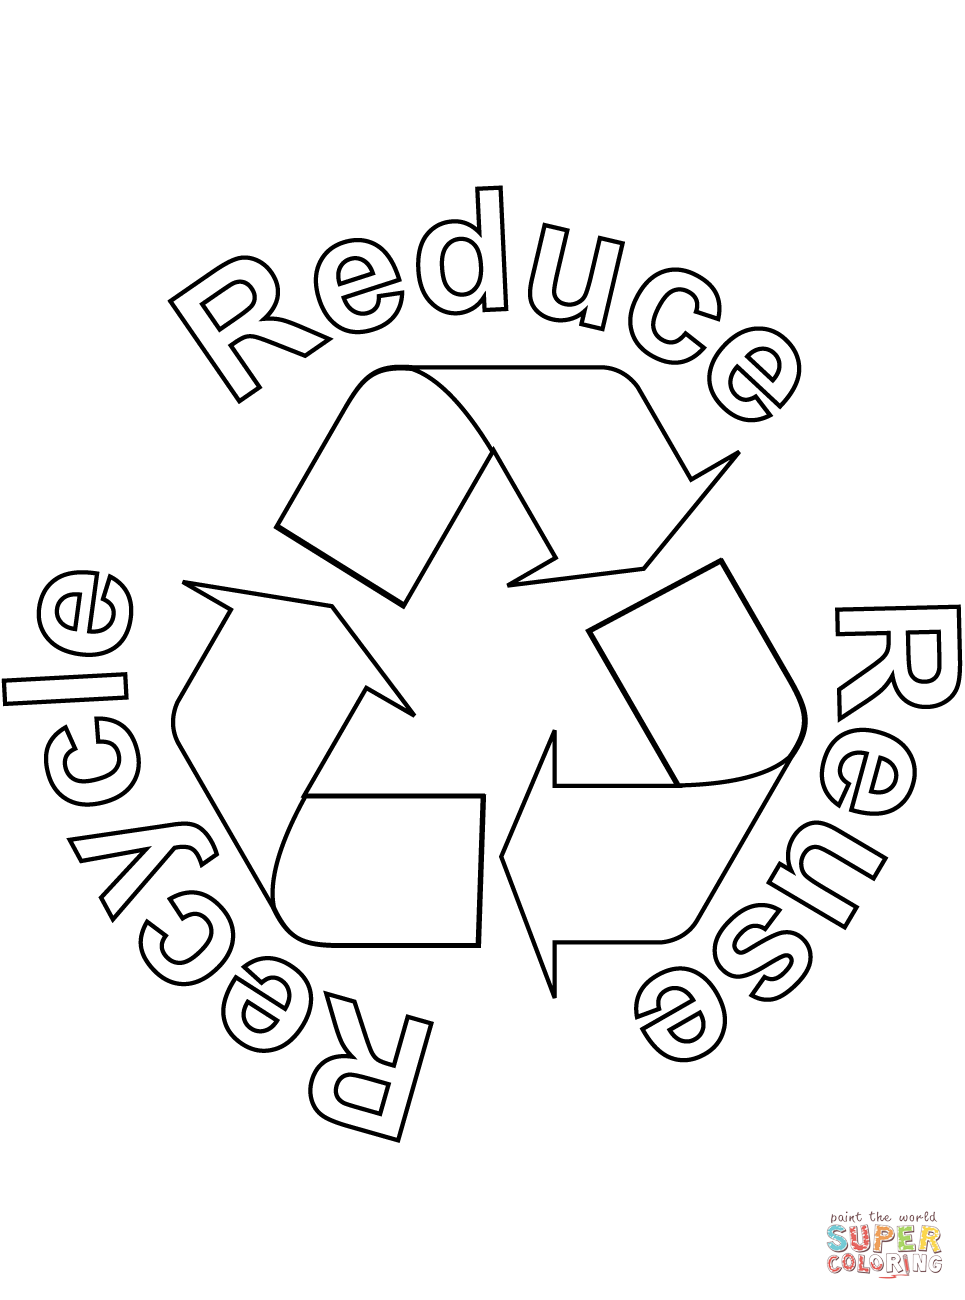 965x1300 Reduce, Reuse, Recycle Coloring Page Free Printable Coloring Pages